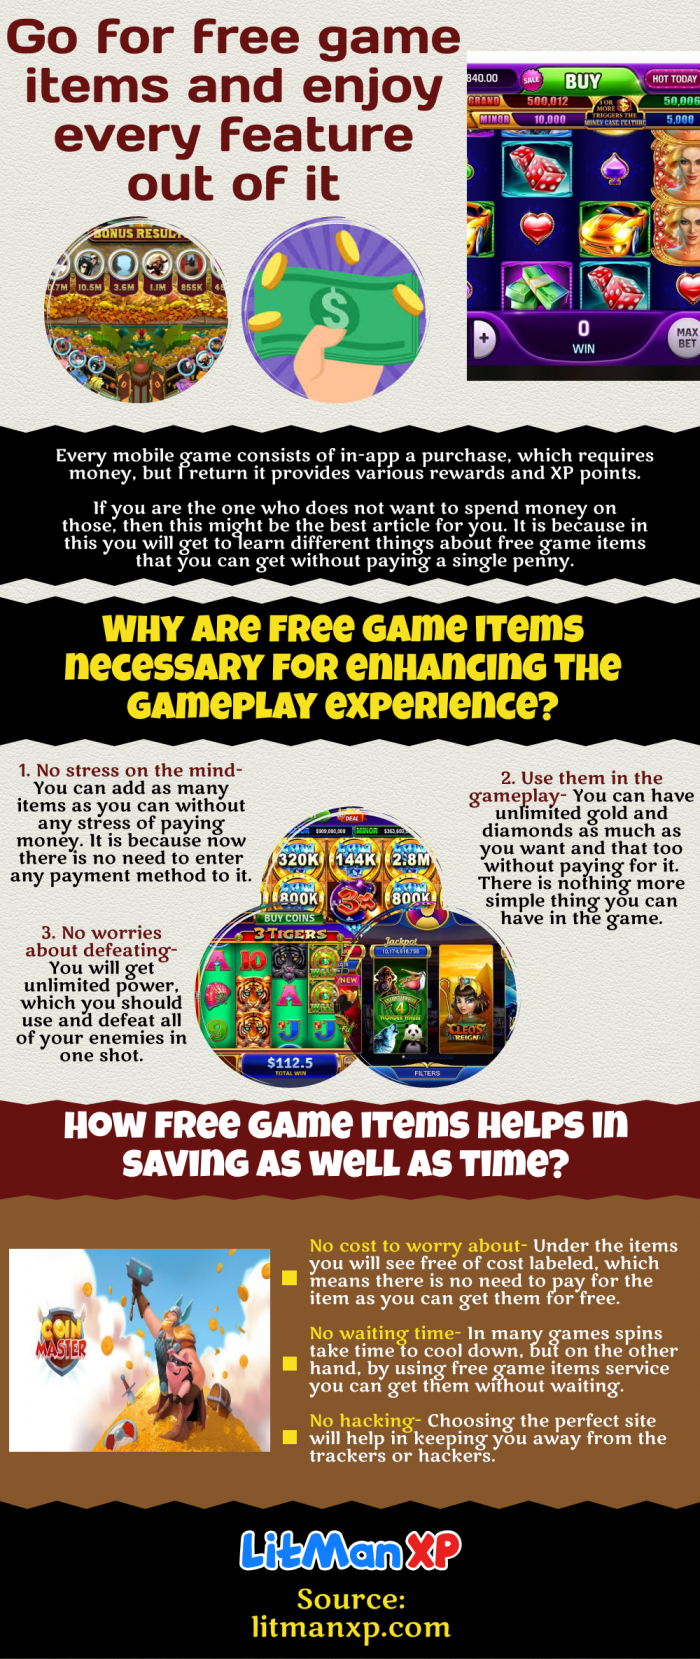 How free game items helps in saving time